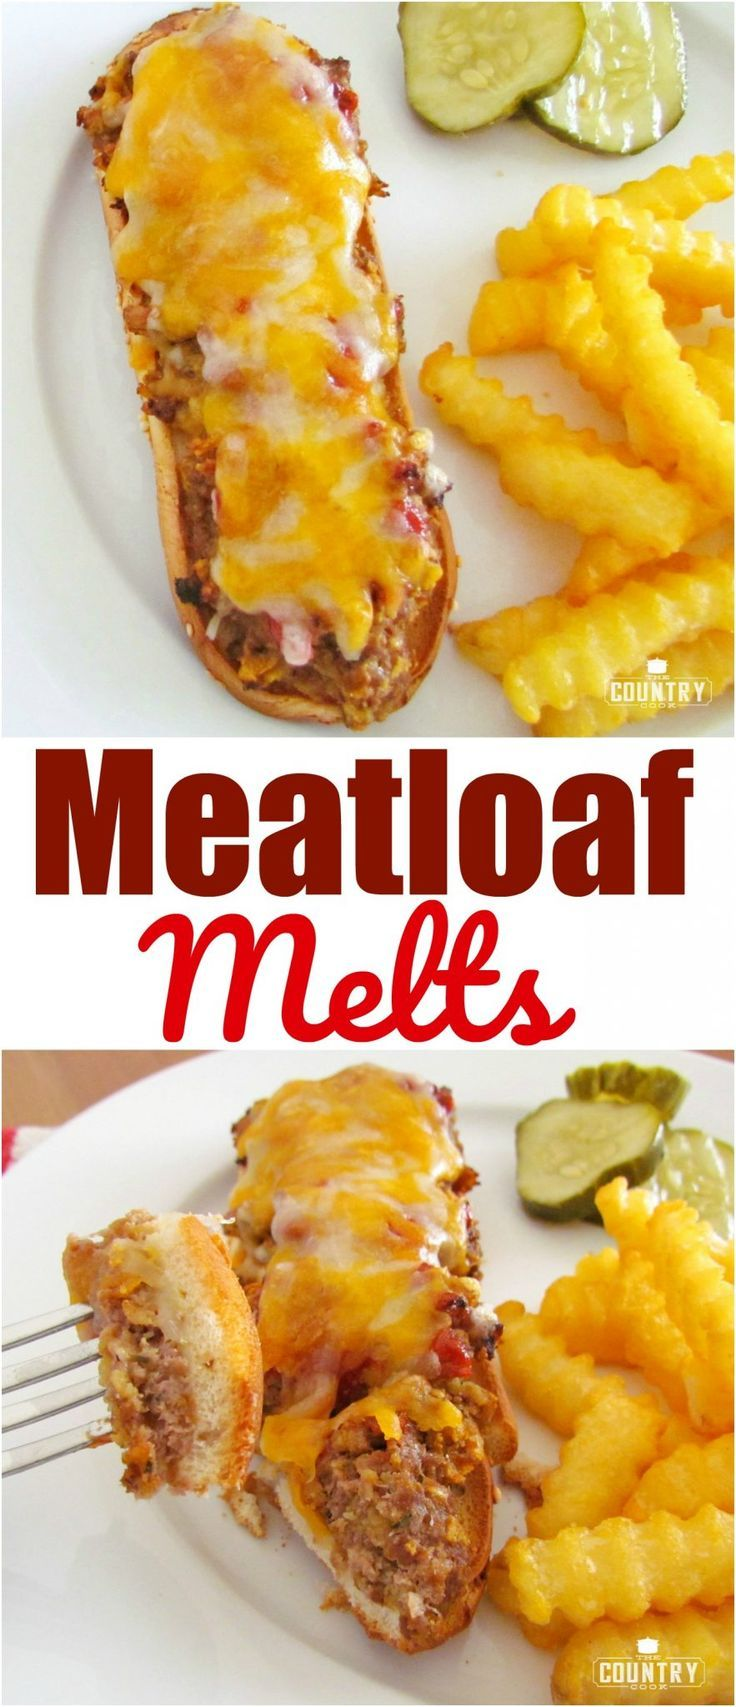 Meatloaf Melts: what a great way to use leftover meatloaf!